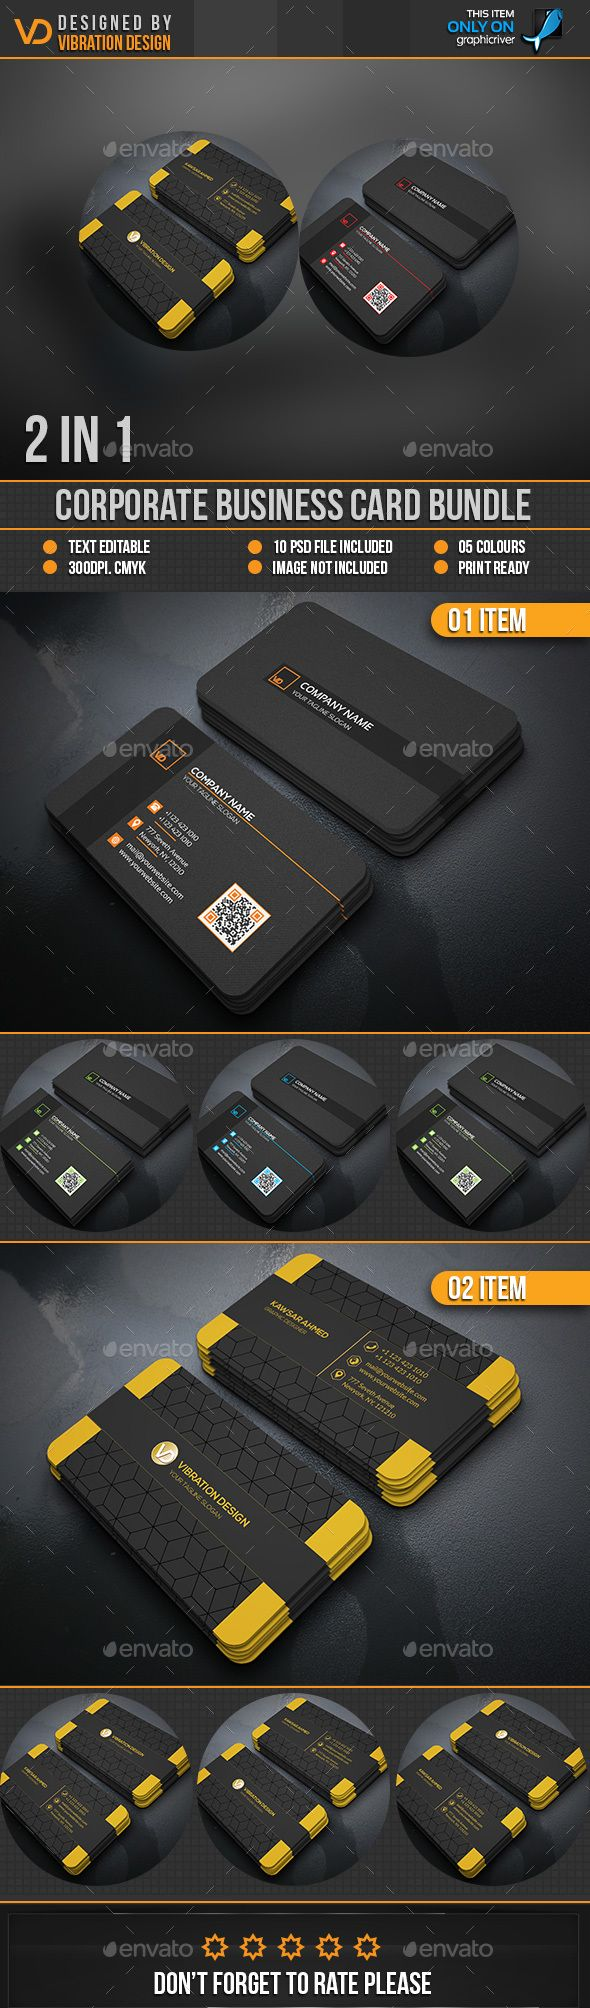 Business Card Bundle Templates PSD. Download here: http://graphicriver.net/item/business-card-bundle/16120359?ref=ksioks